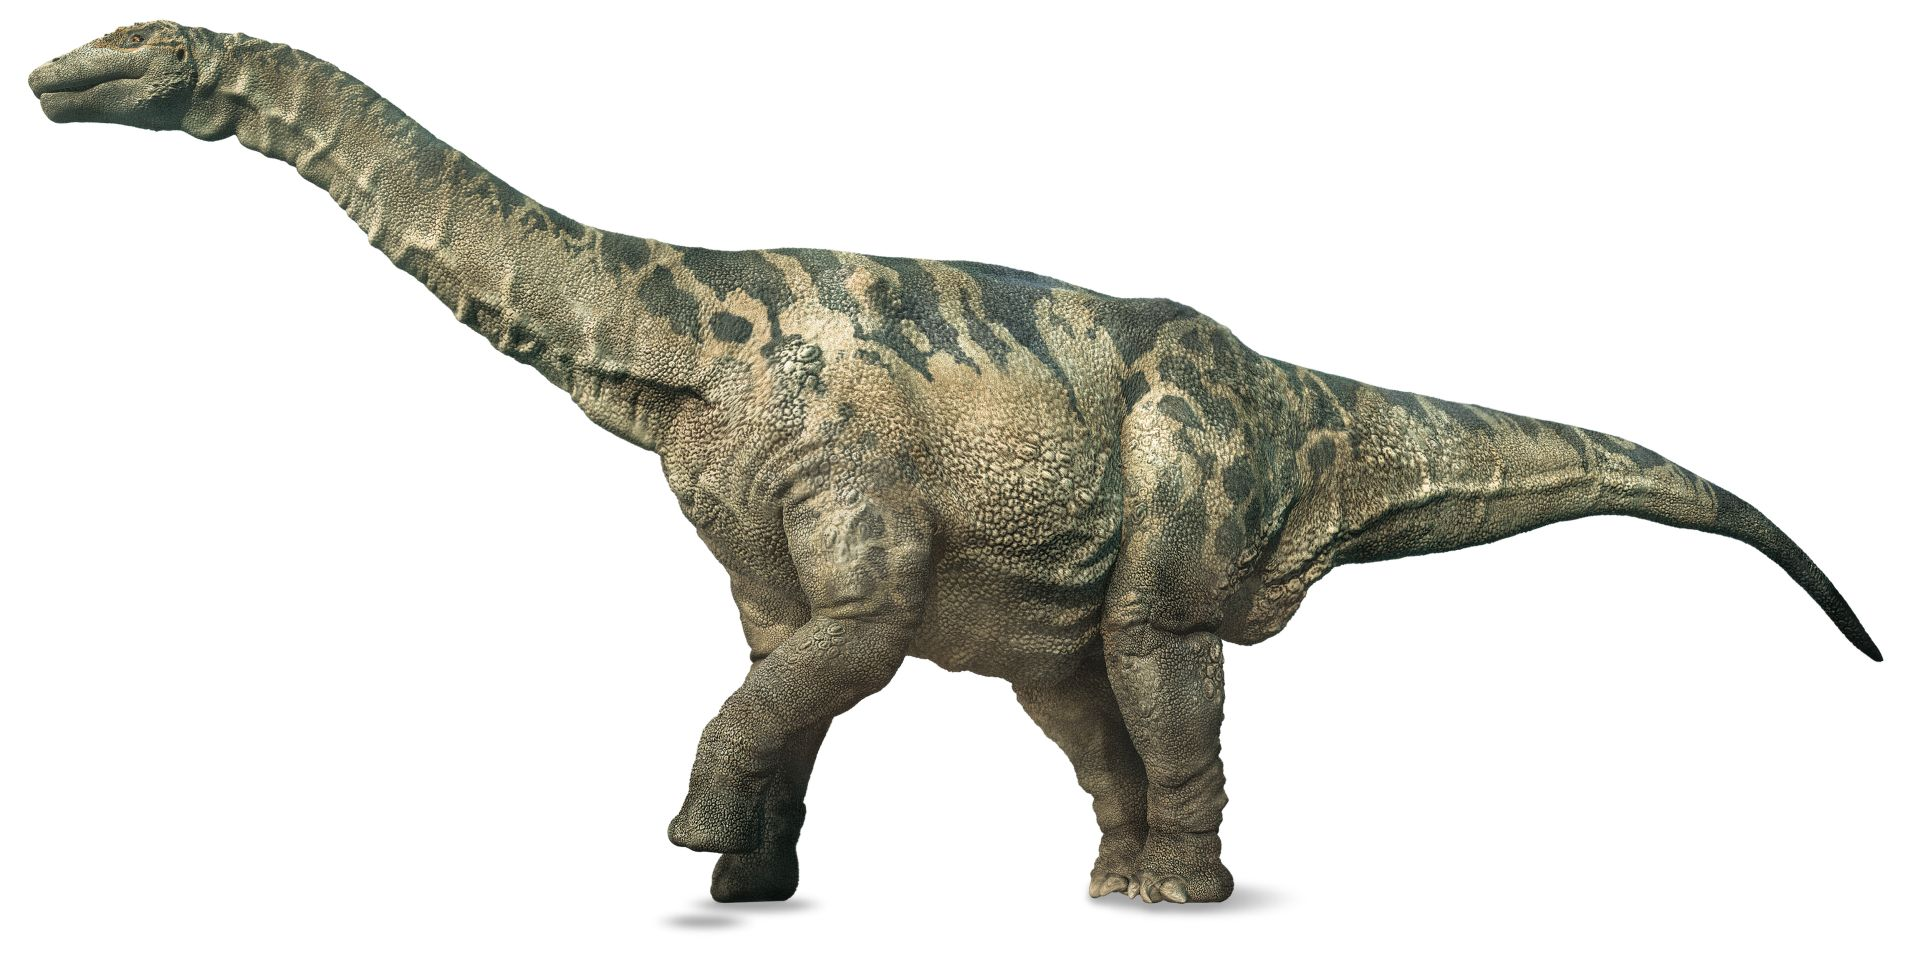 https://res.cloudinary.com/dk-find-out/image/upload/q_80,w_1920,f_auto/Argentinosaurus_HiRes_zrnqrq.jpg